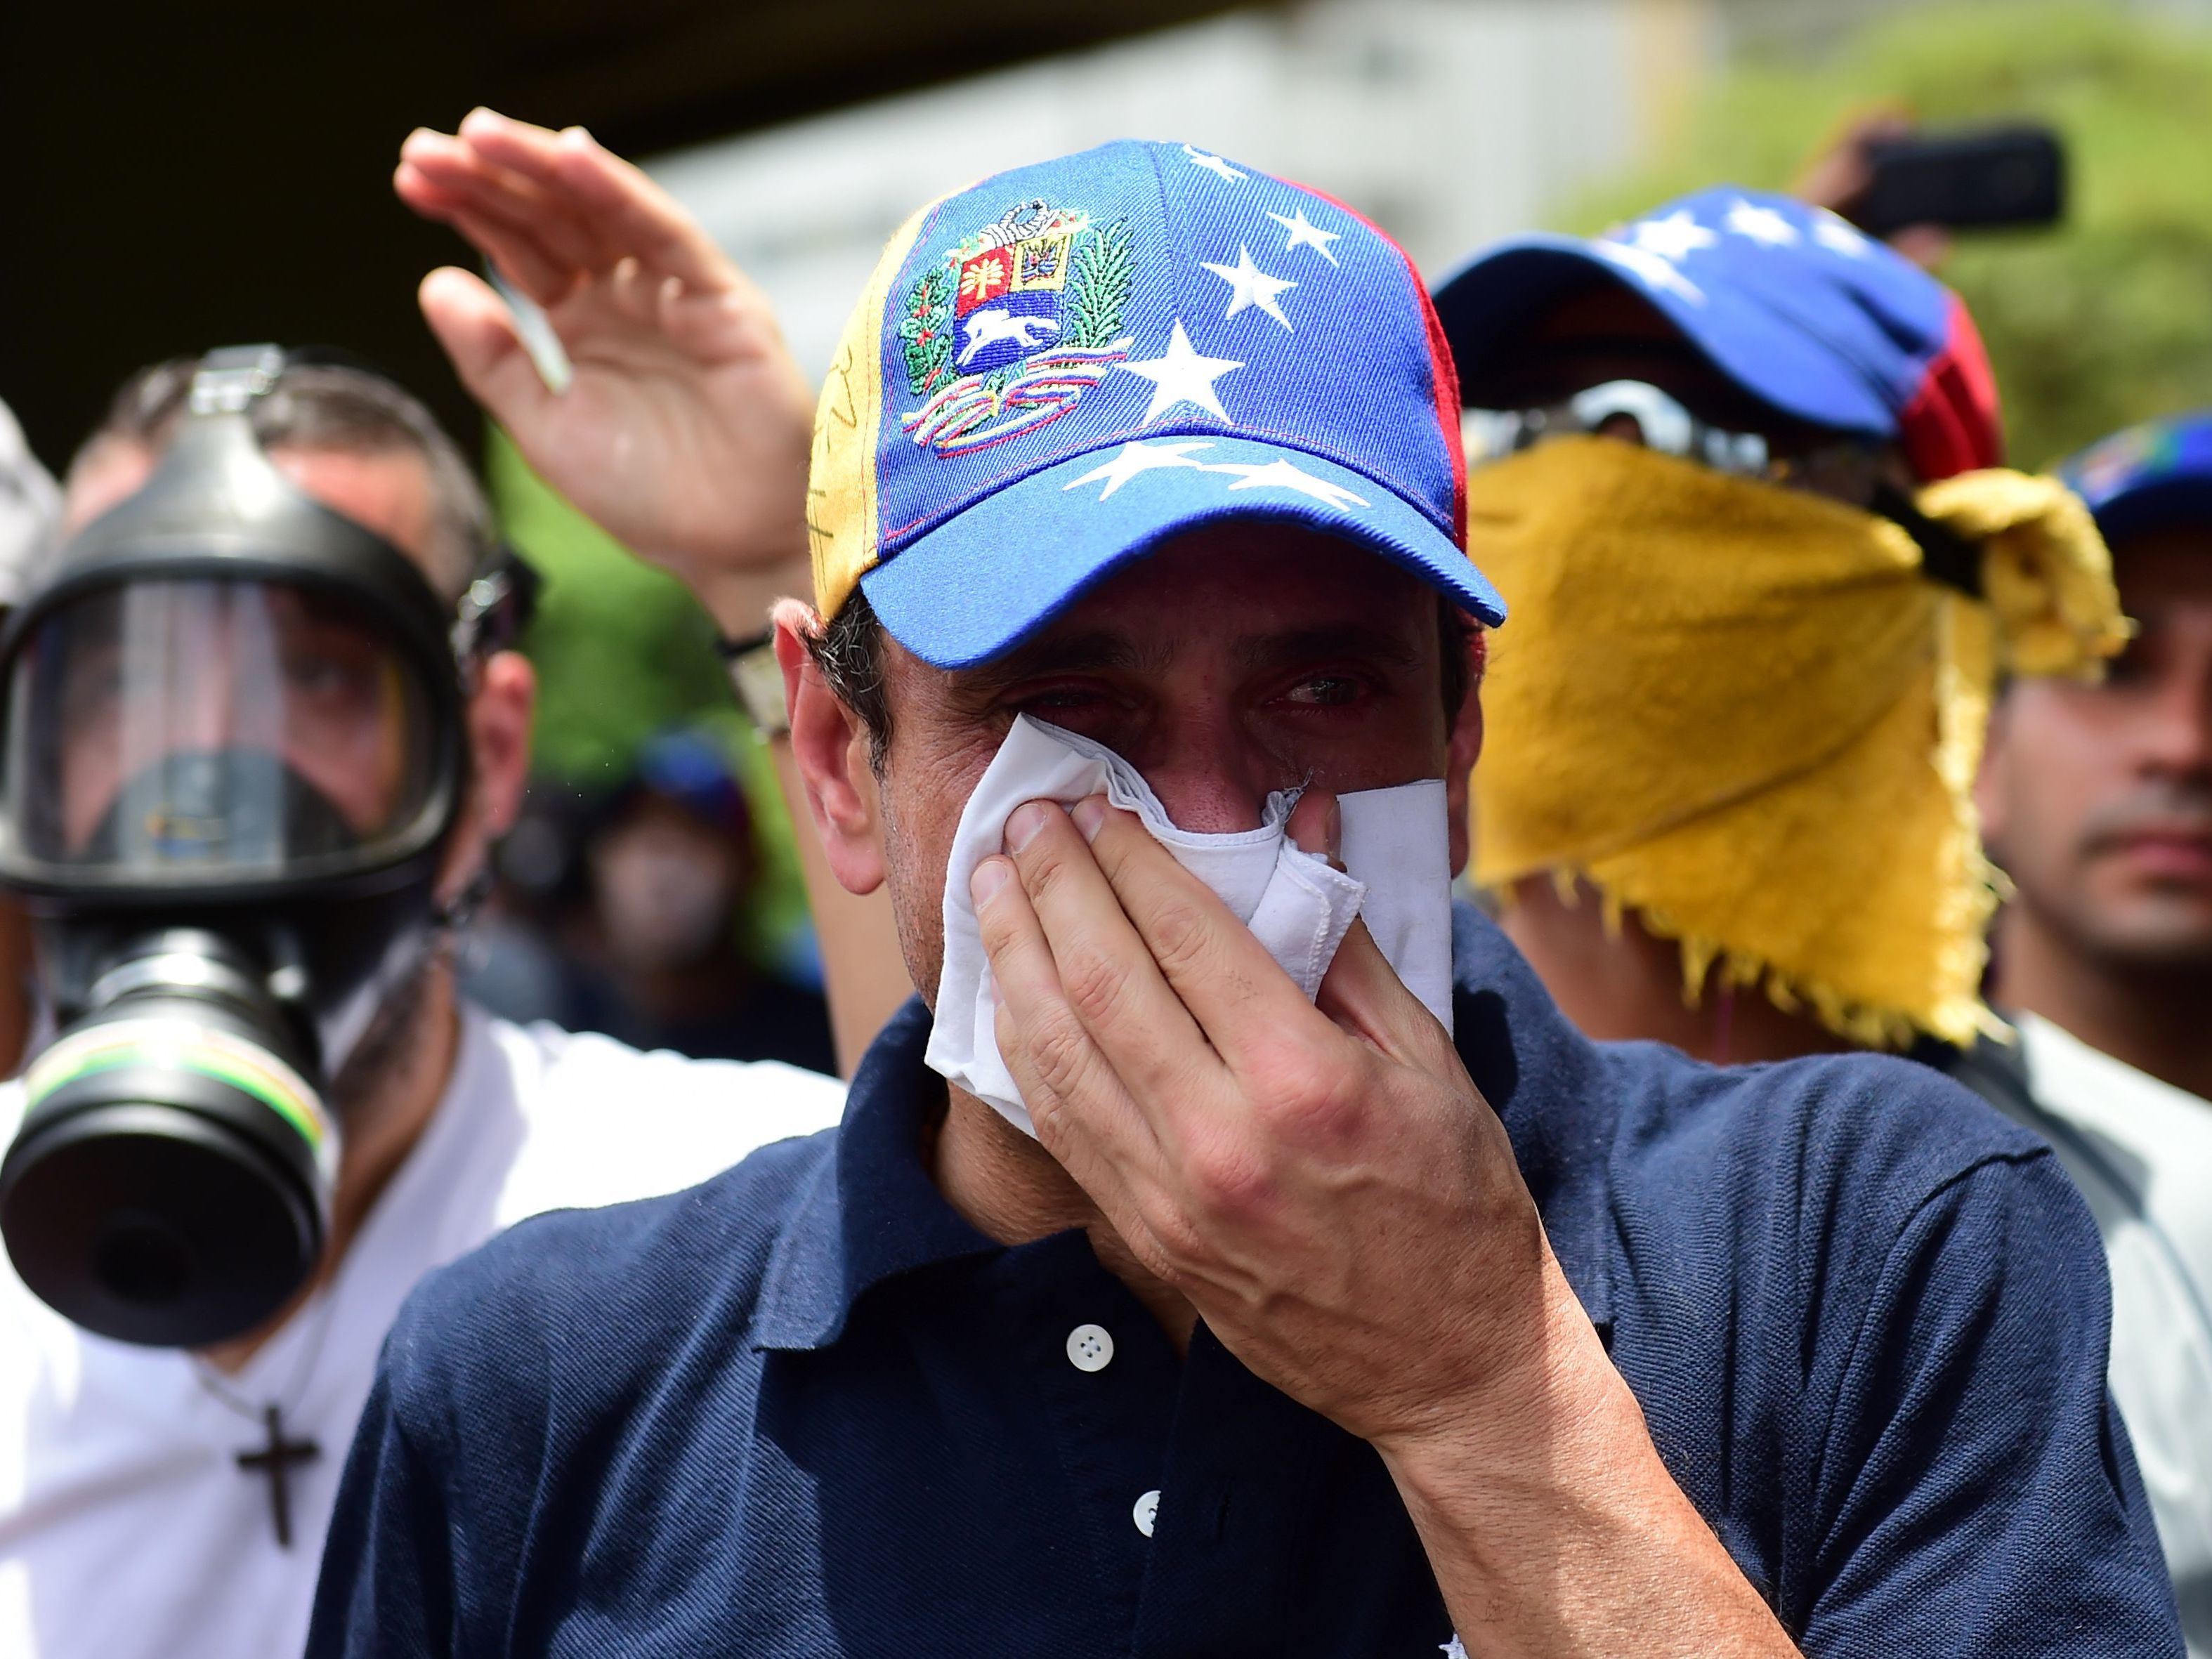 Opposition leader Henrique Capriles, who was banned from public office for 15 years, protects himself against tear gas during a rally against Venezuelan President Nicolas Maduro on Wednesday.     (Ronaldo Schemidt/AFP/Getty Images)